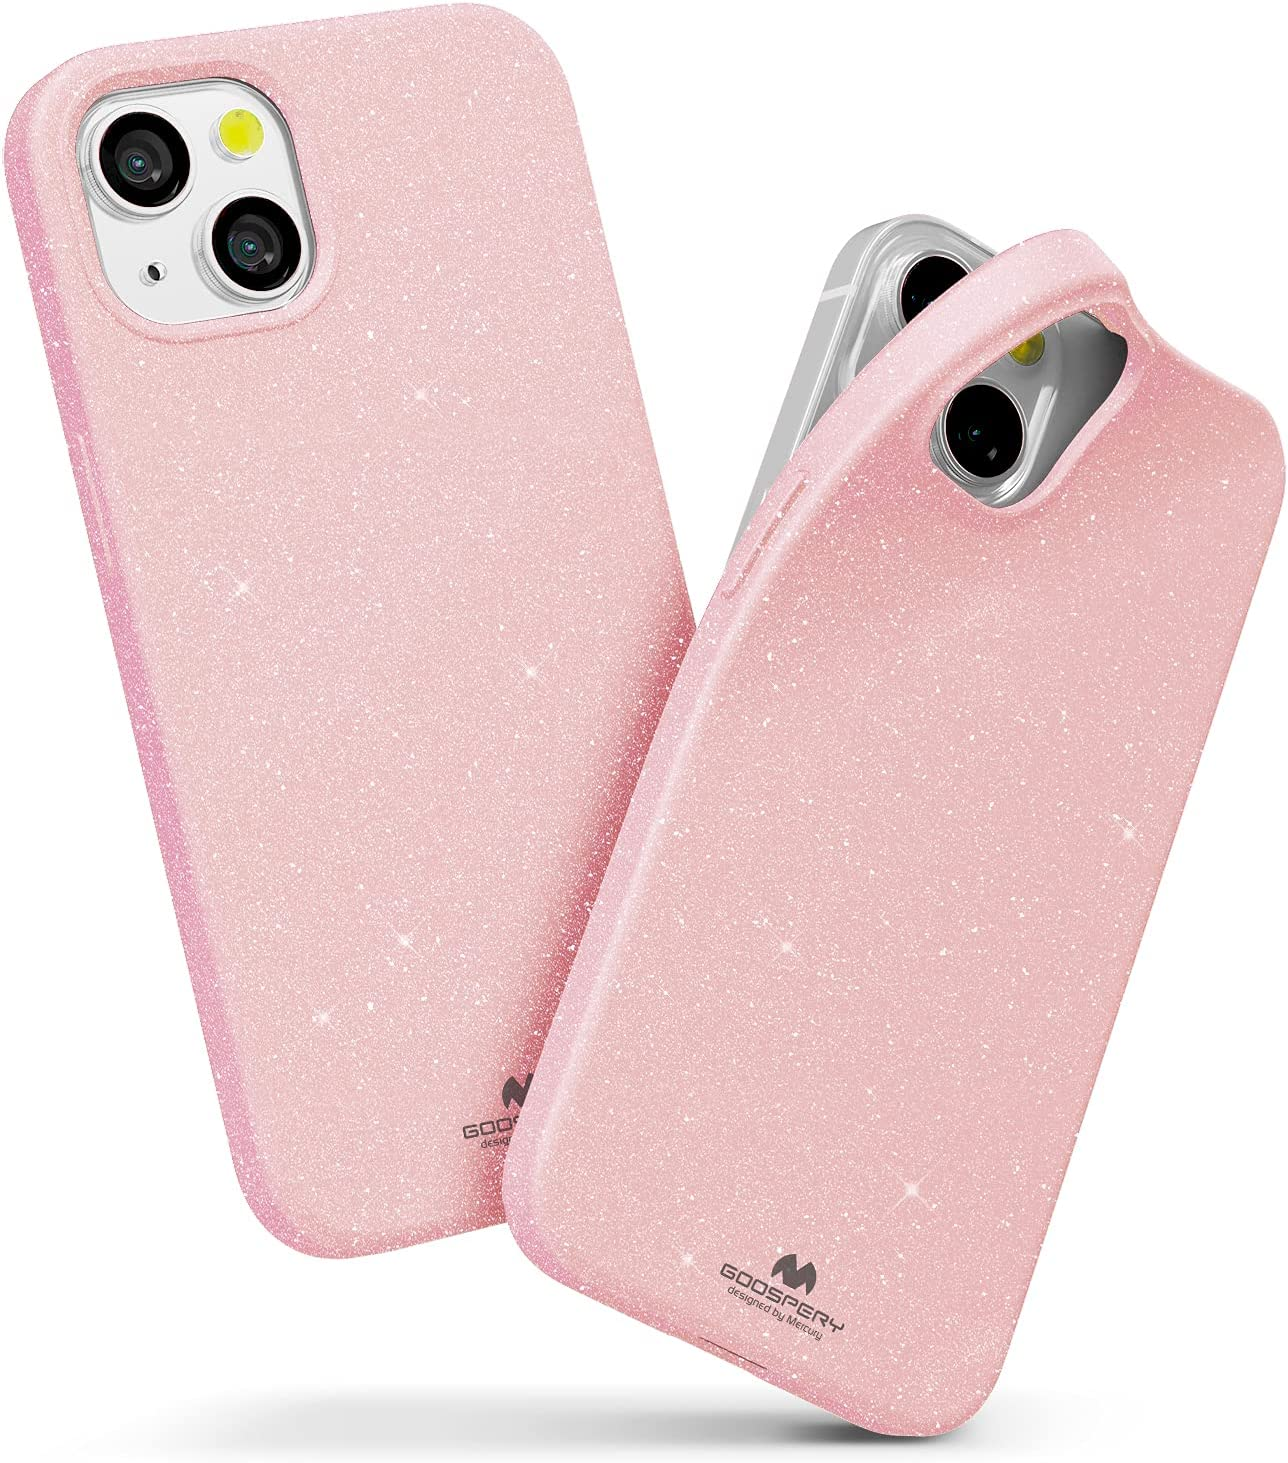 Goospery Pearl Jelly Compatible with iPhone 13 Mini Case, Vivid Color with Light Shimmer Jewel Effects Glitter Sparkles Shine Look Slim Thin TPU Rubber Back Cover (Pink) IP13M-JEL-PNK